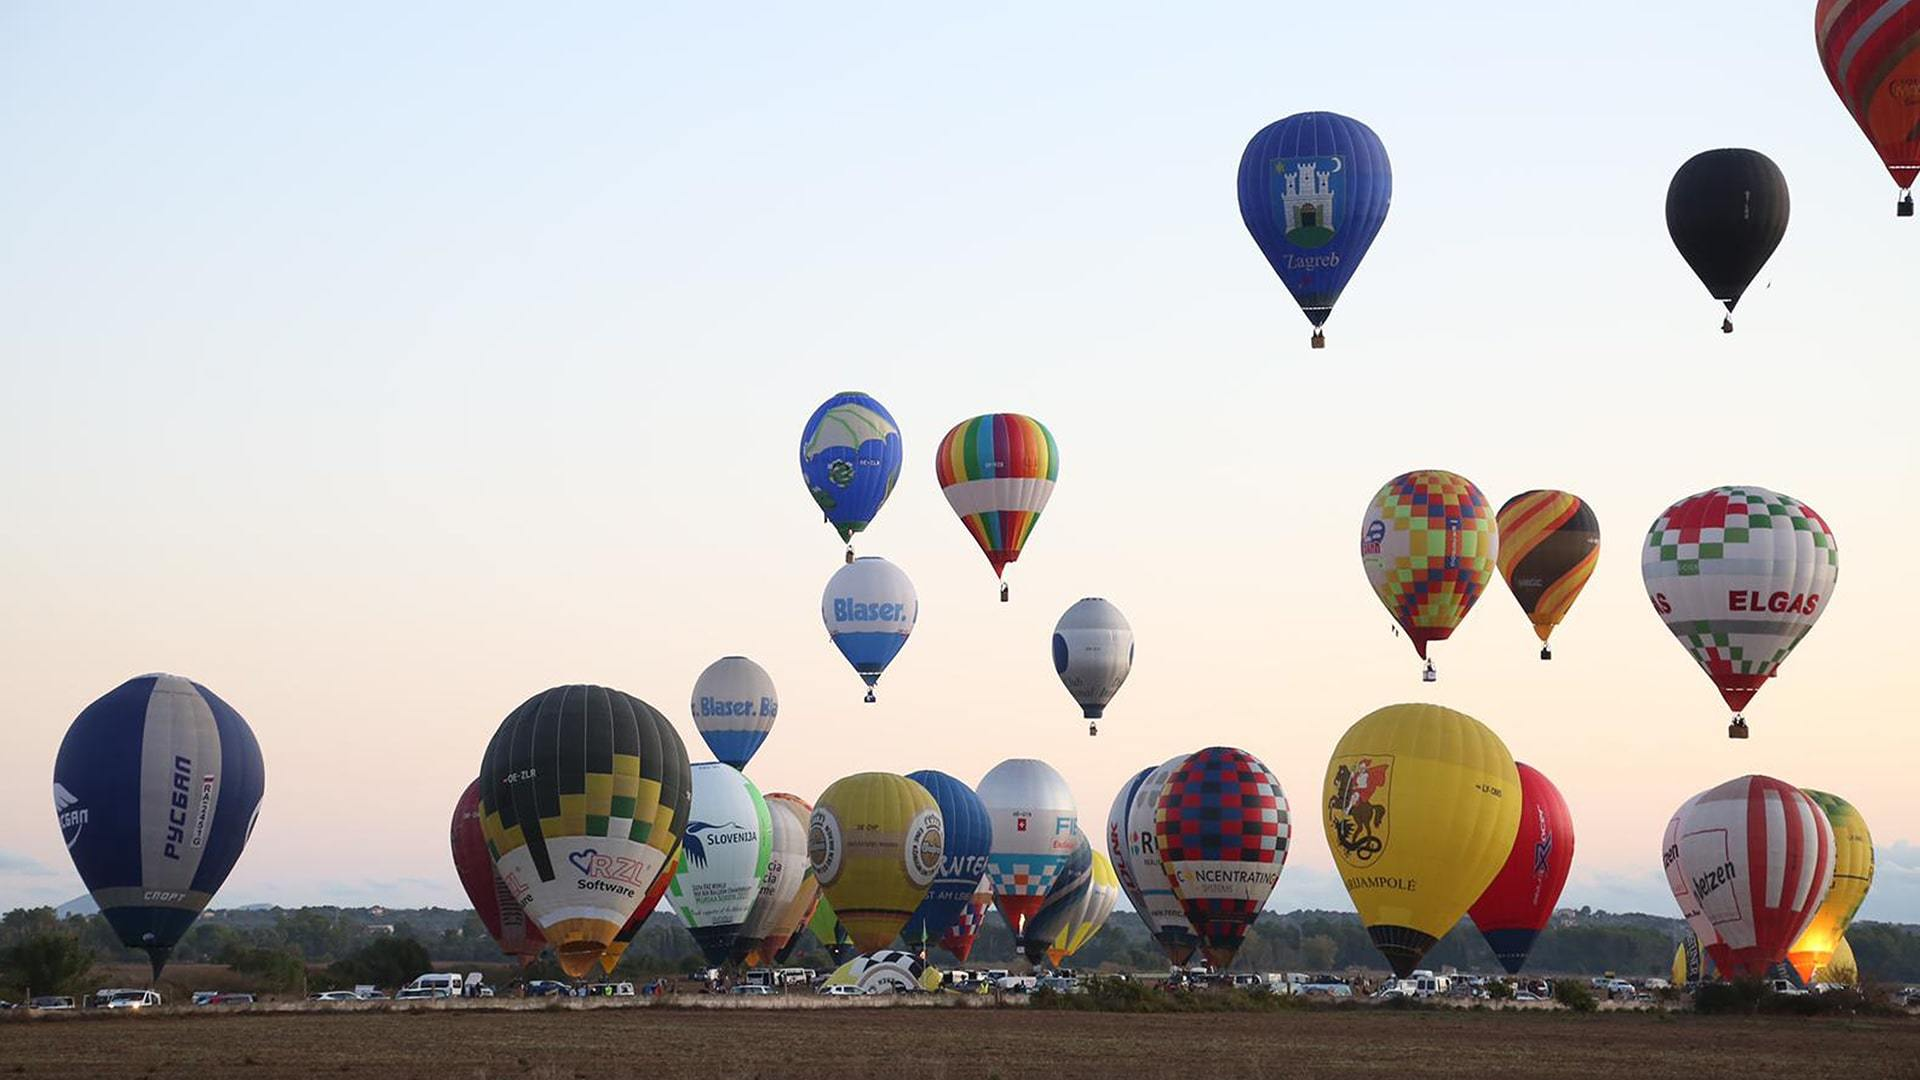 Balloons taking off from Malllorca field during the championships min